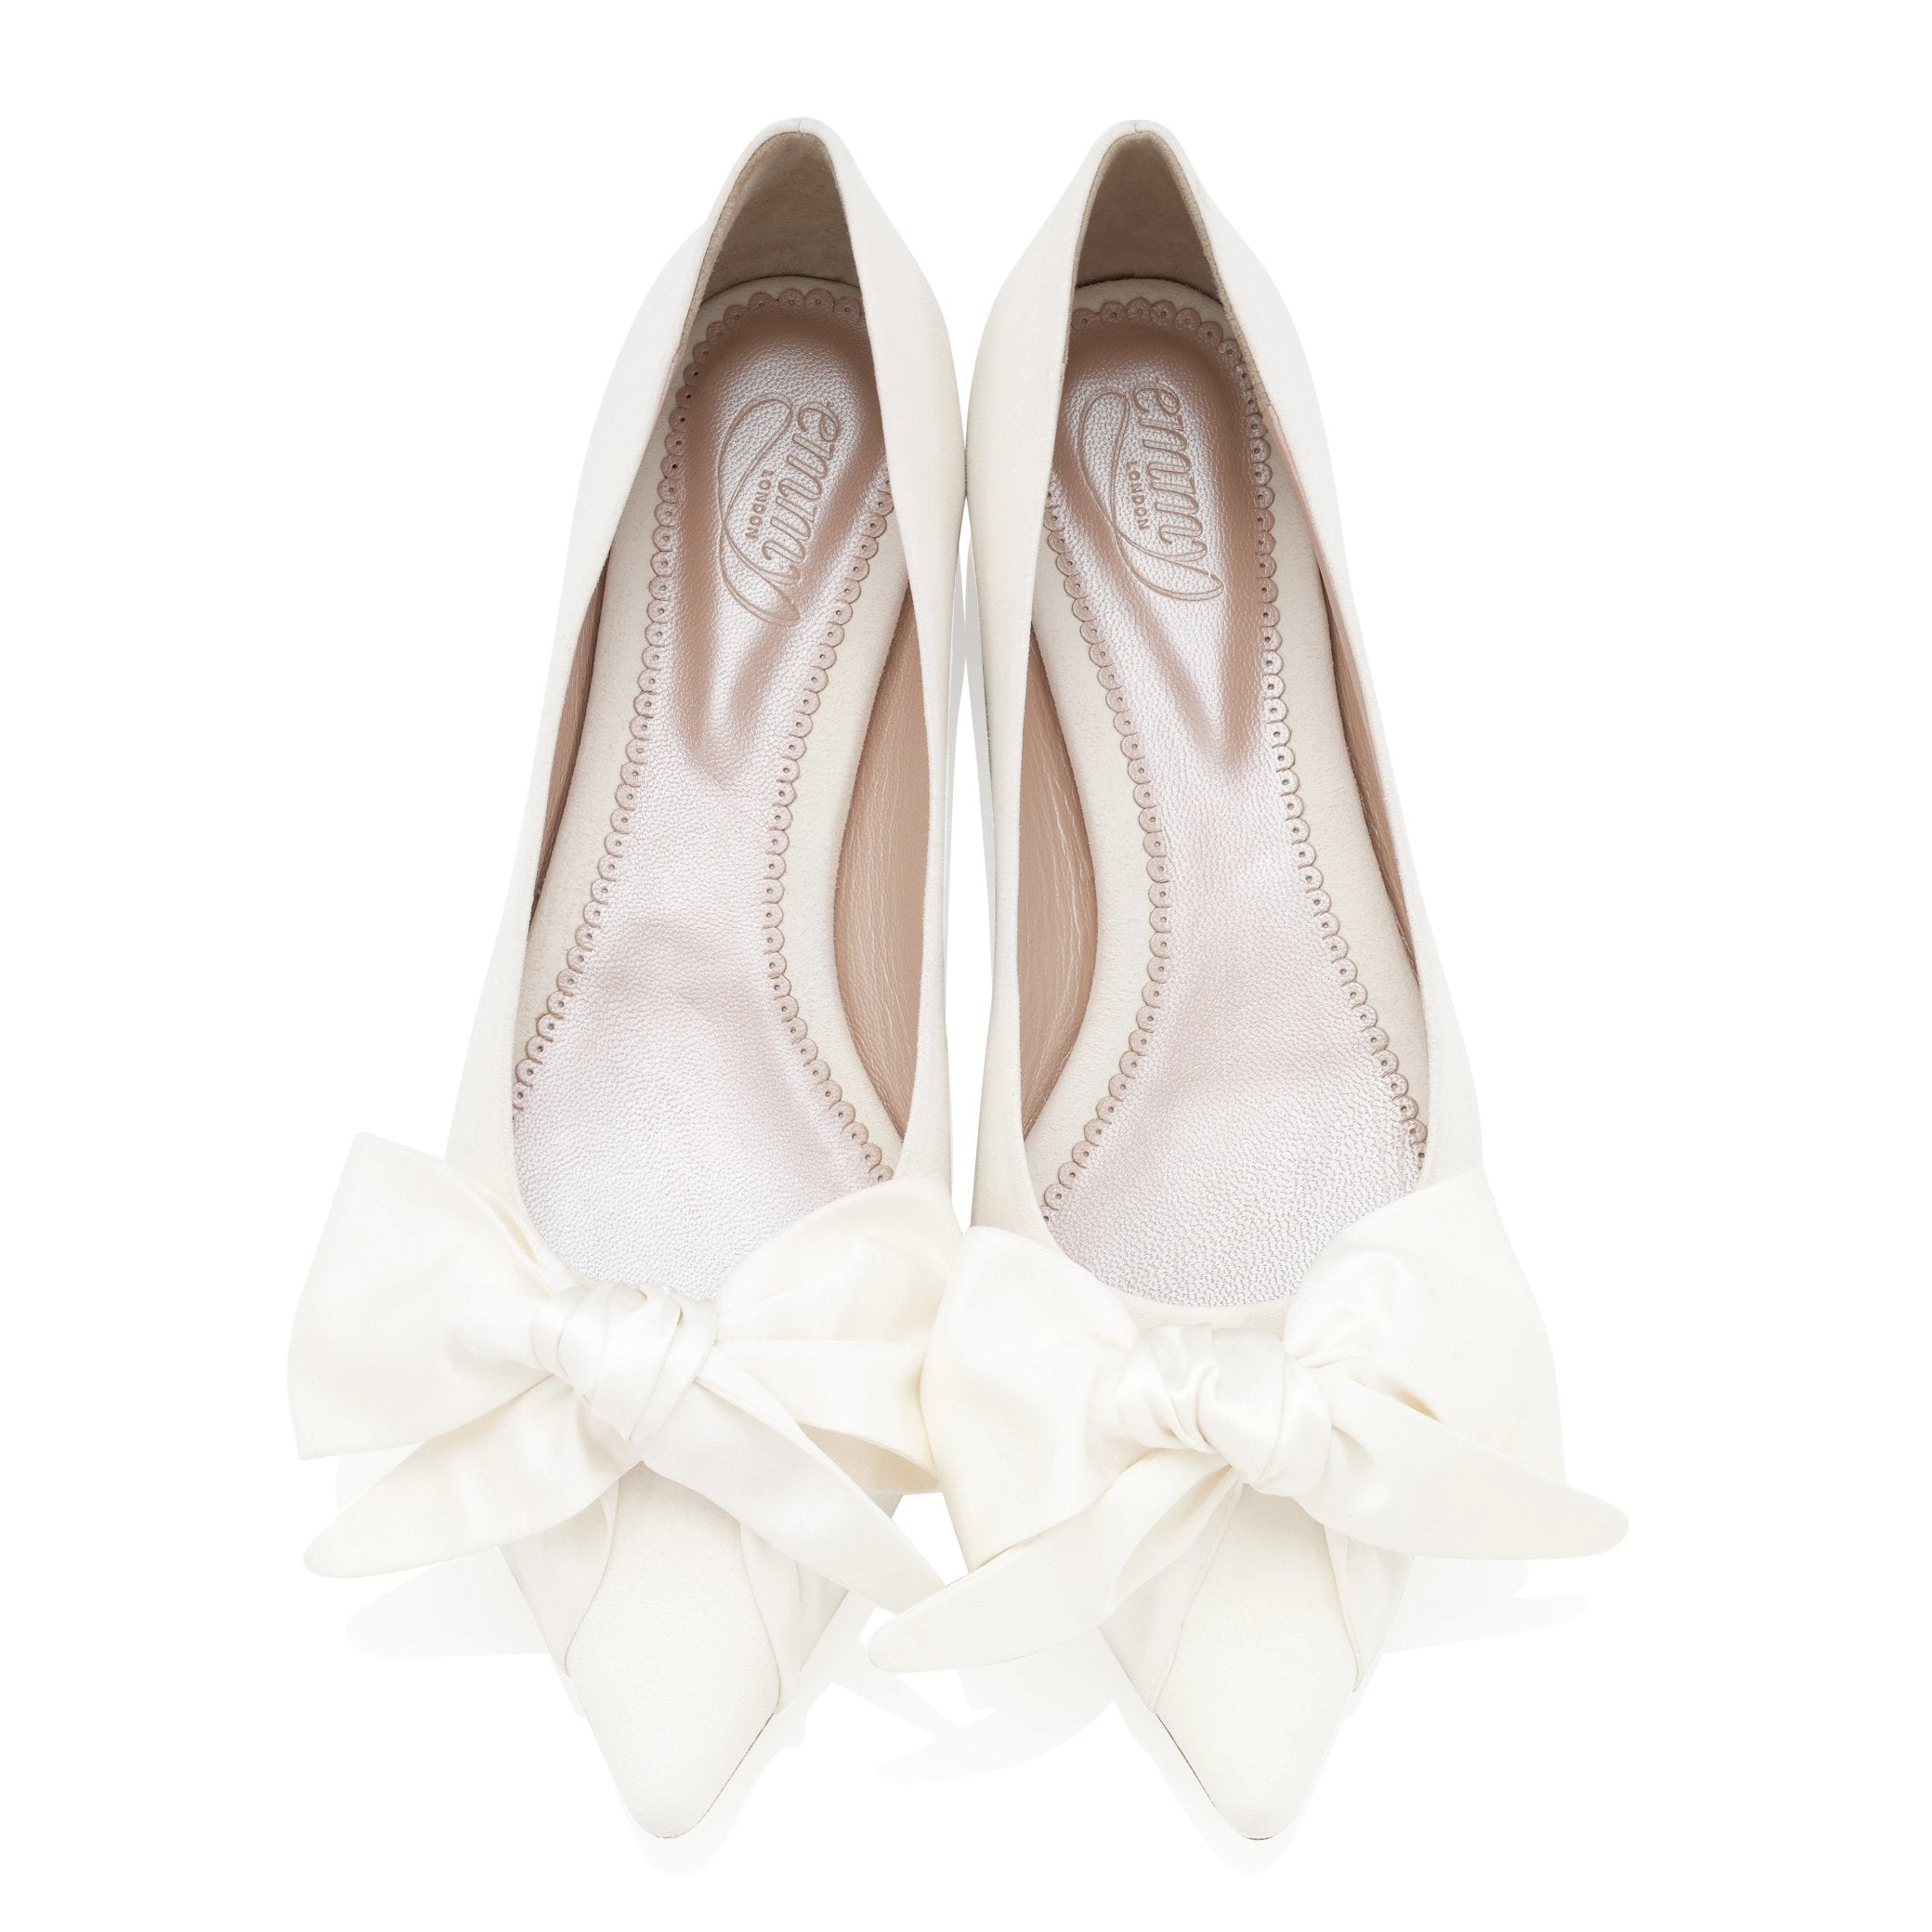 Florence Flat Bridal Shoes with Satin Bow By Emmy London